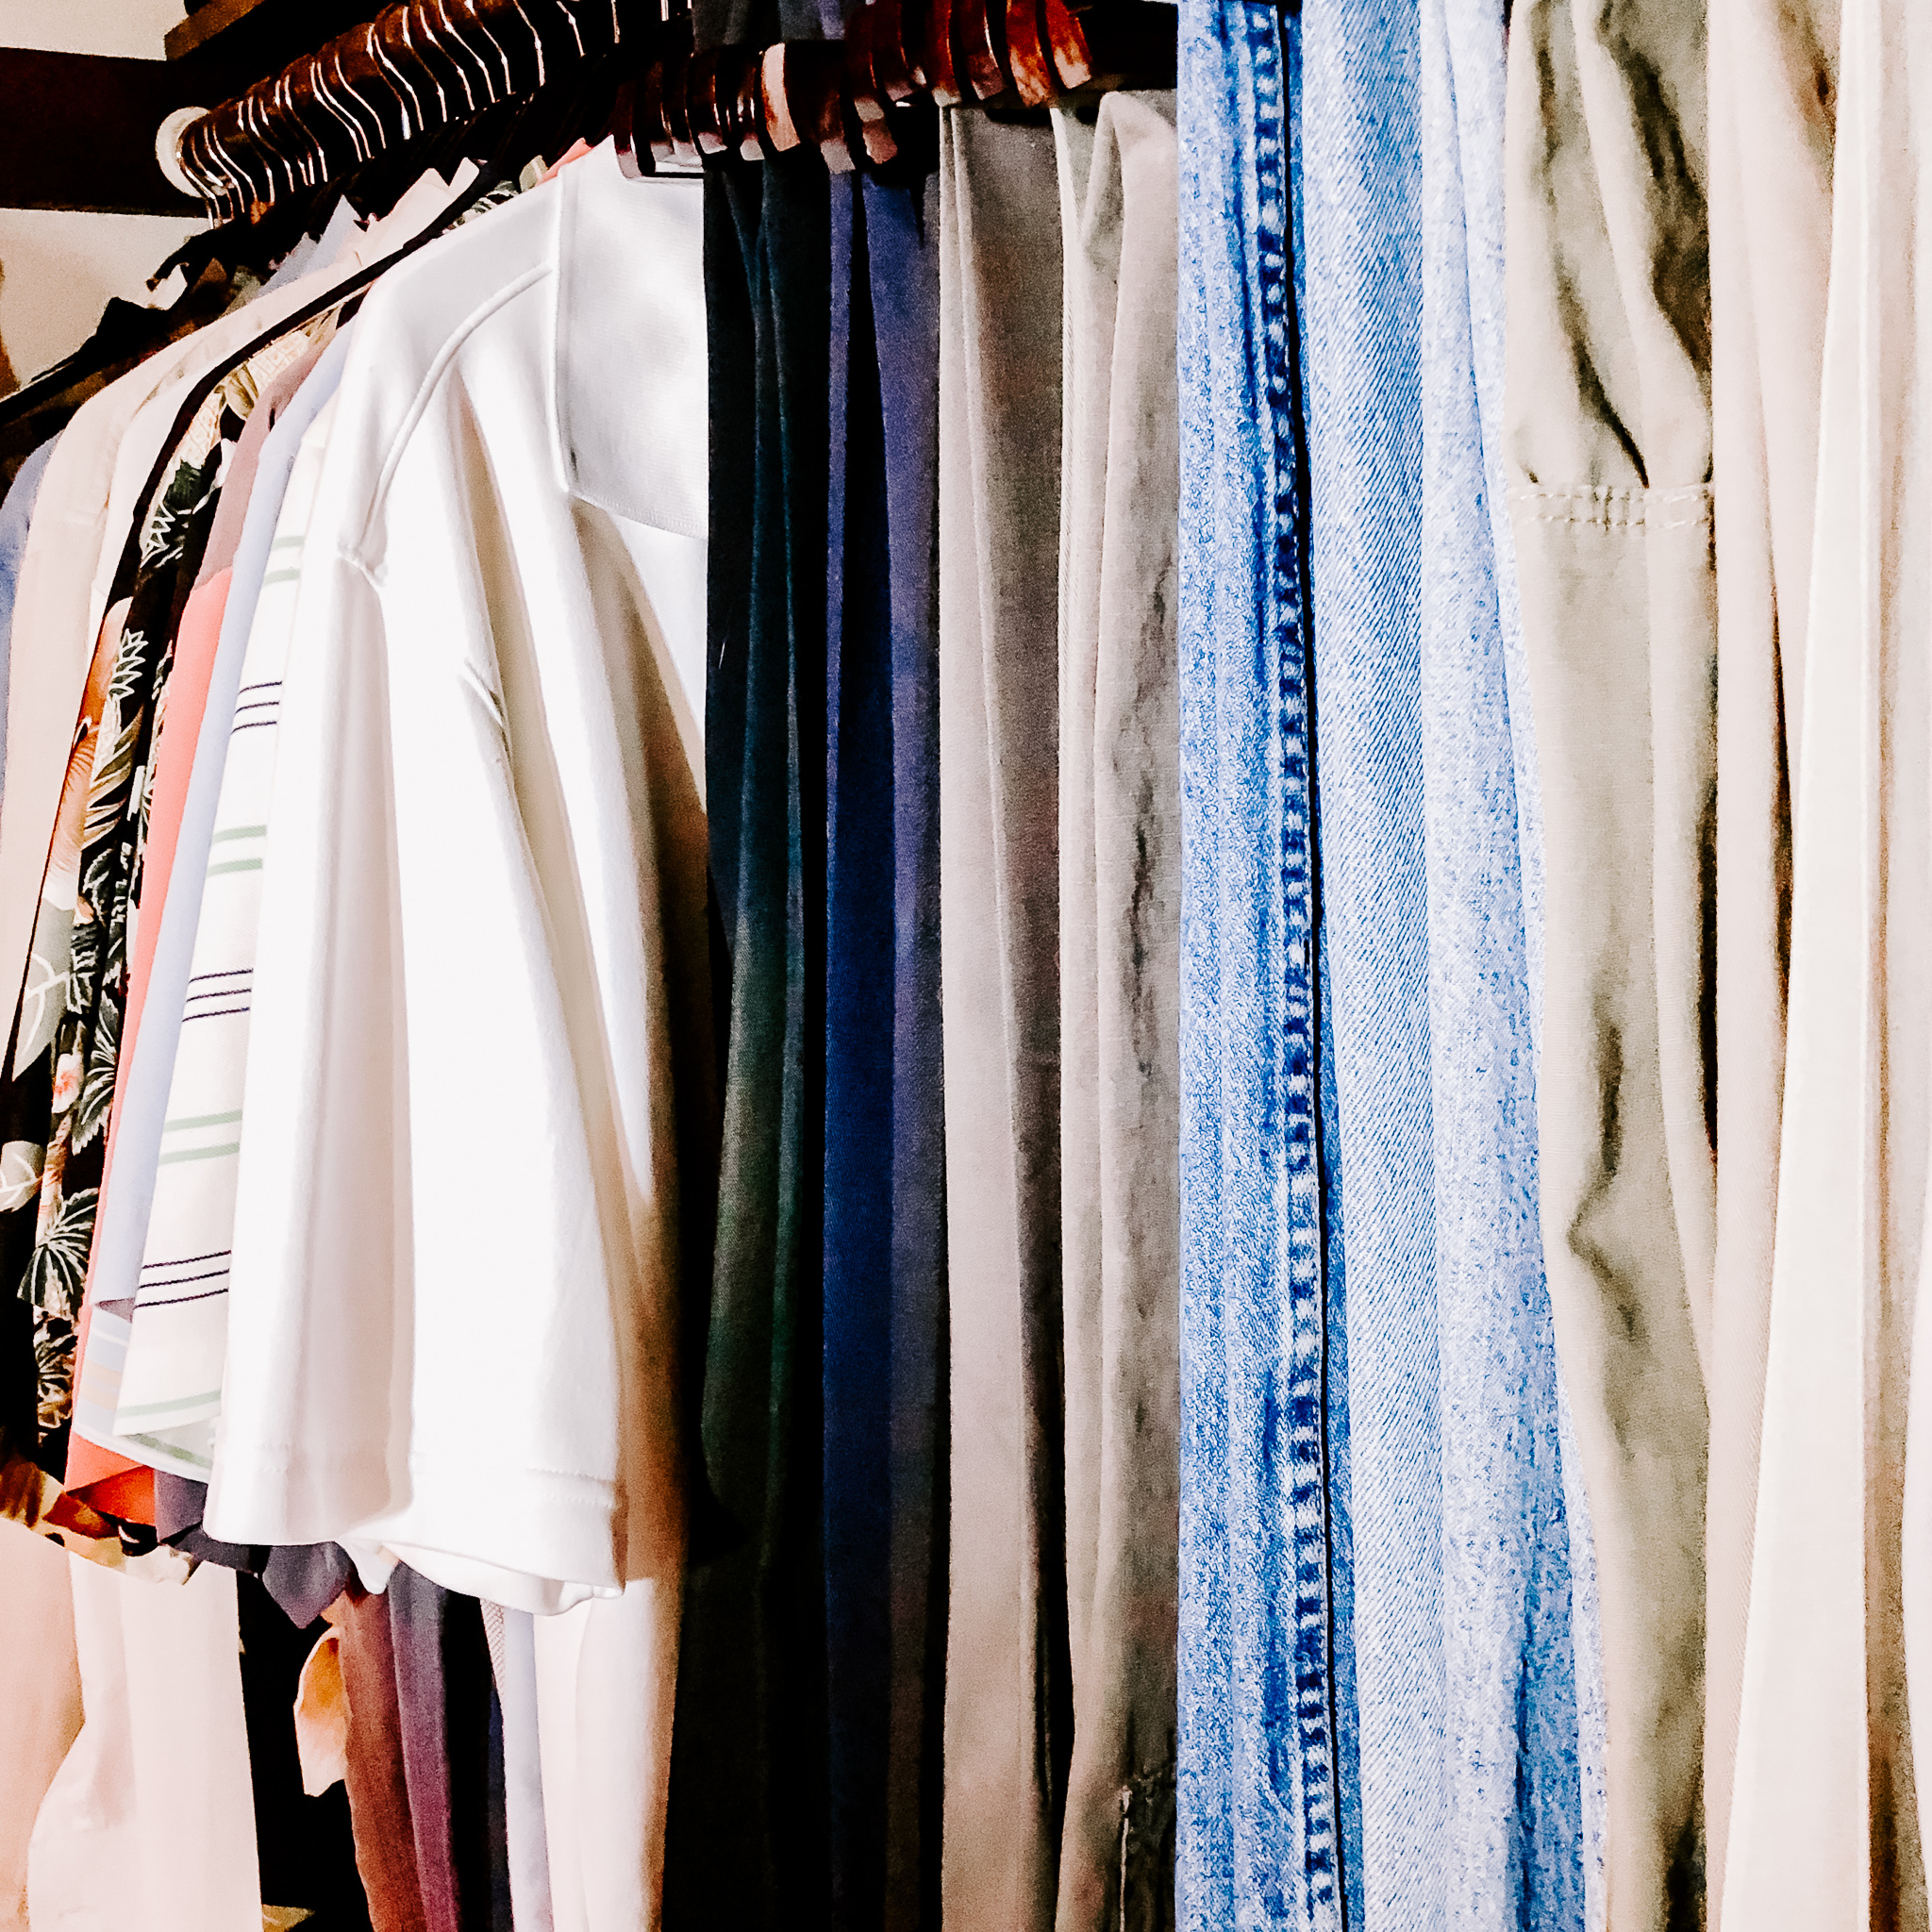 final product of organized clothing closet